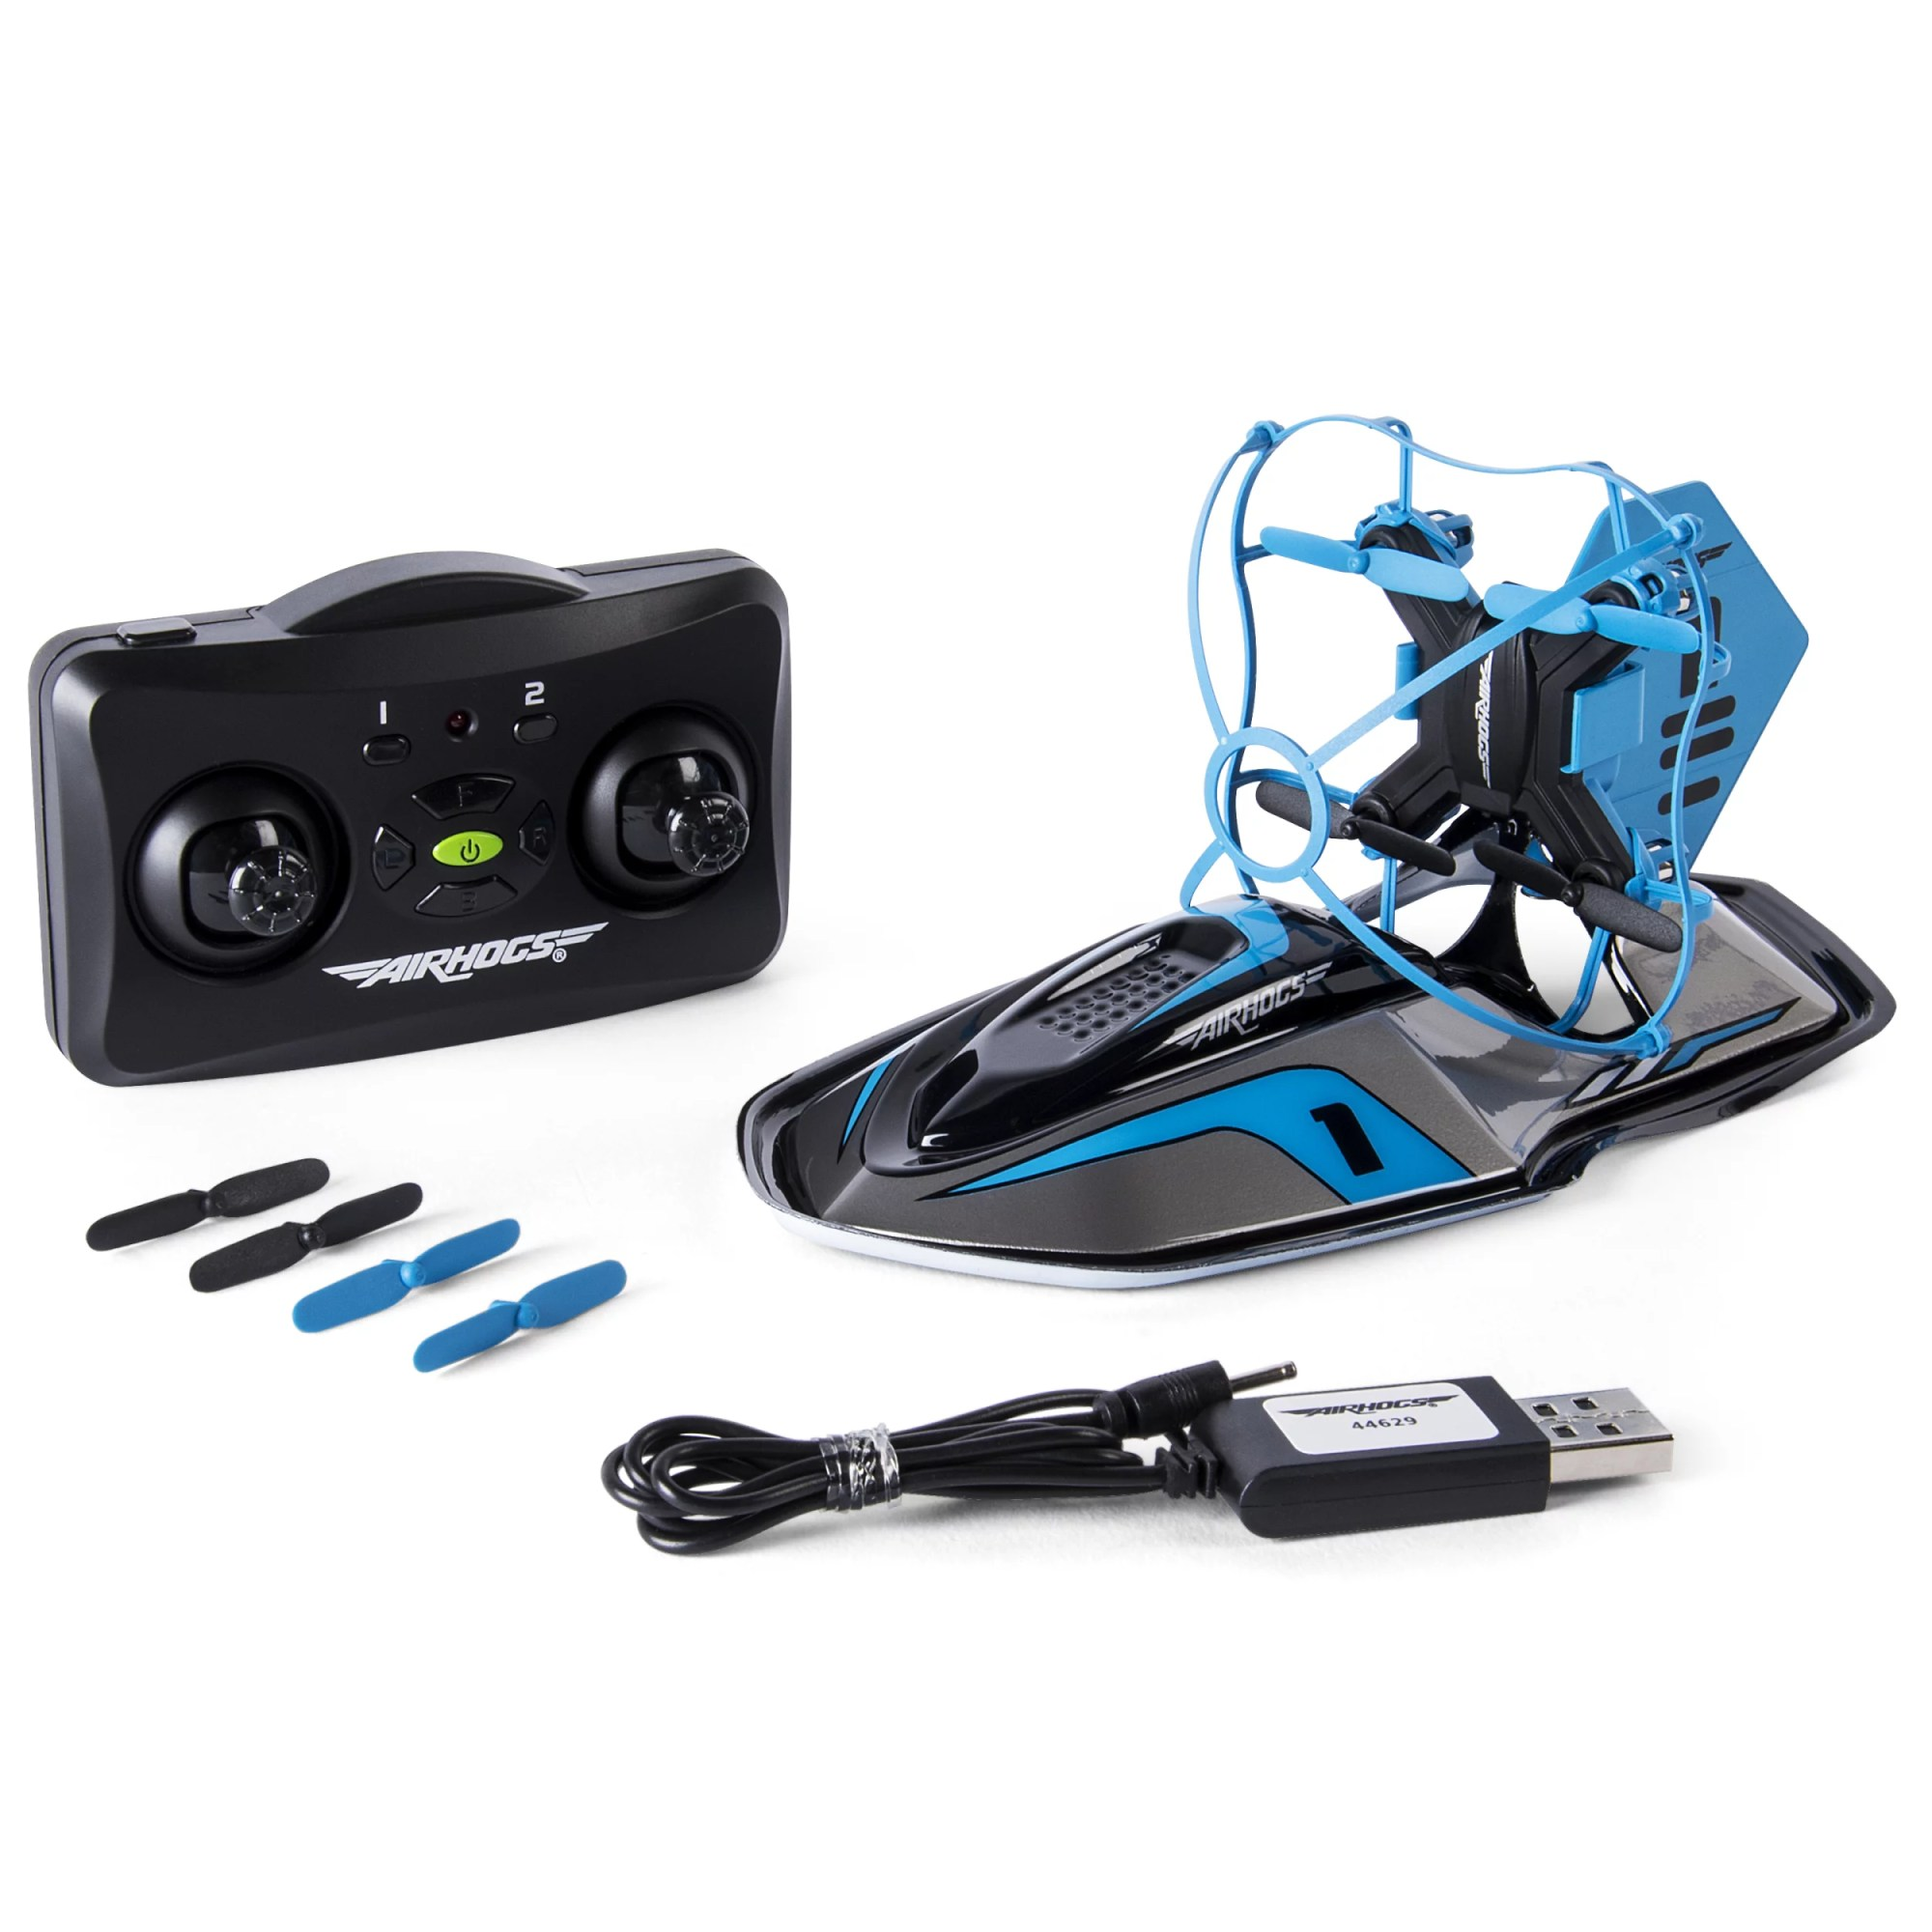 hight resolution of air hogs 2 in 1 hyper drift drone for kids capable of high speed racing and flying blue